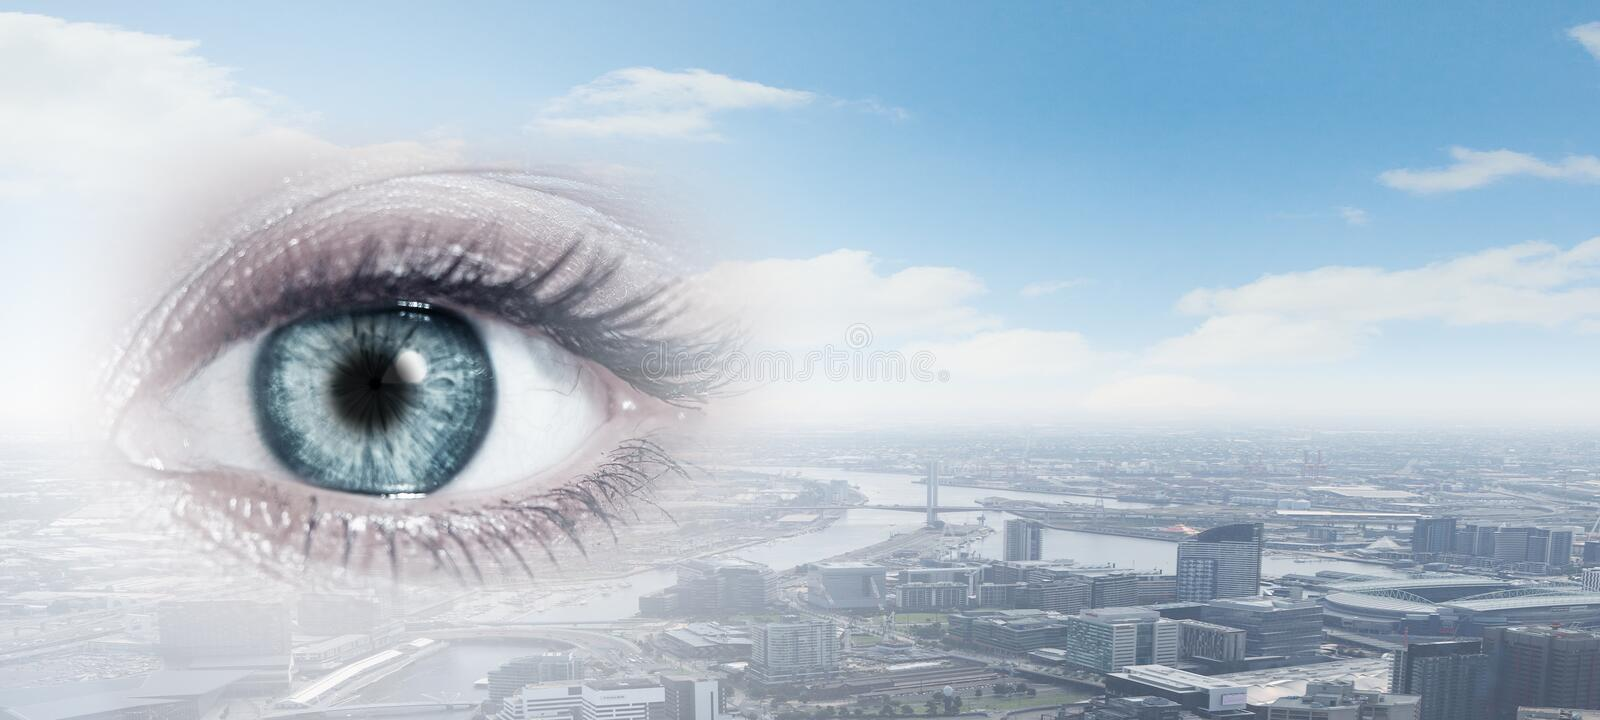 City panoramic view. Bird eye view of modern city with human female eye stock illustration